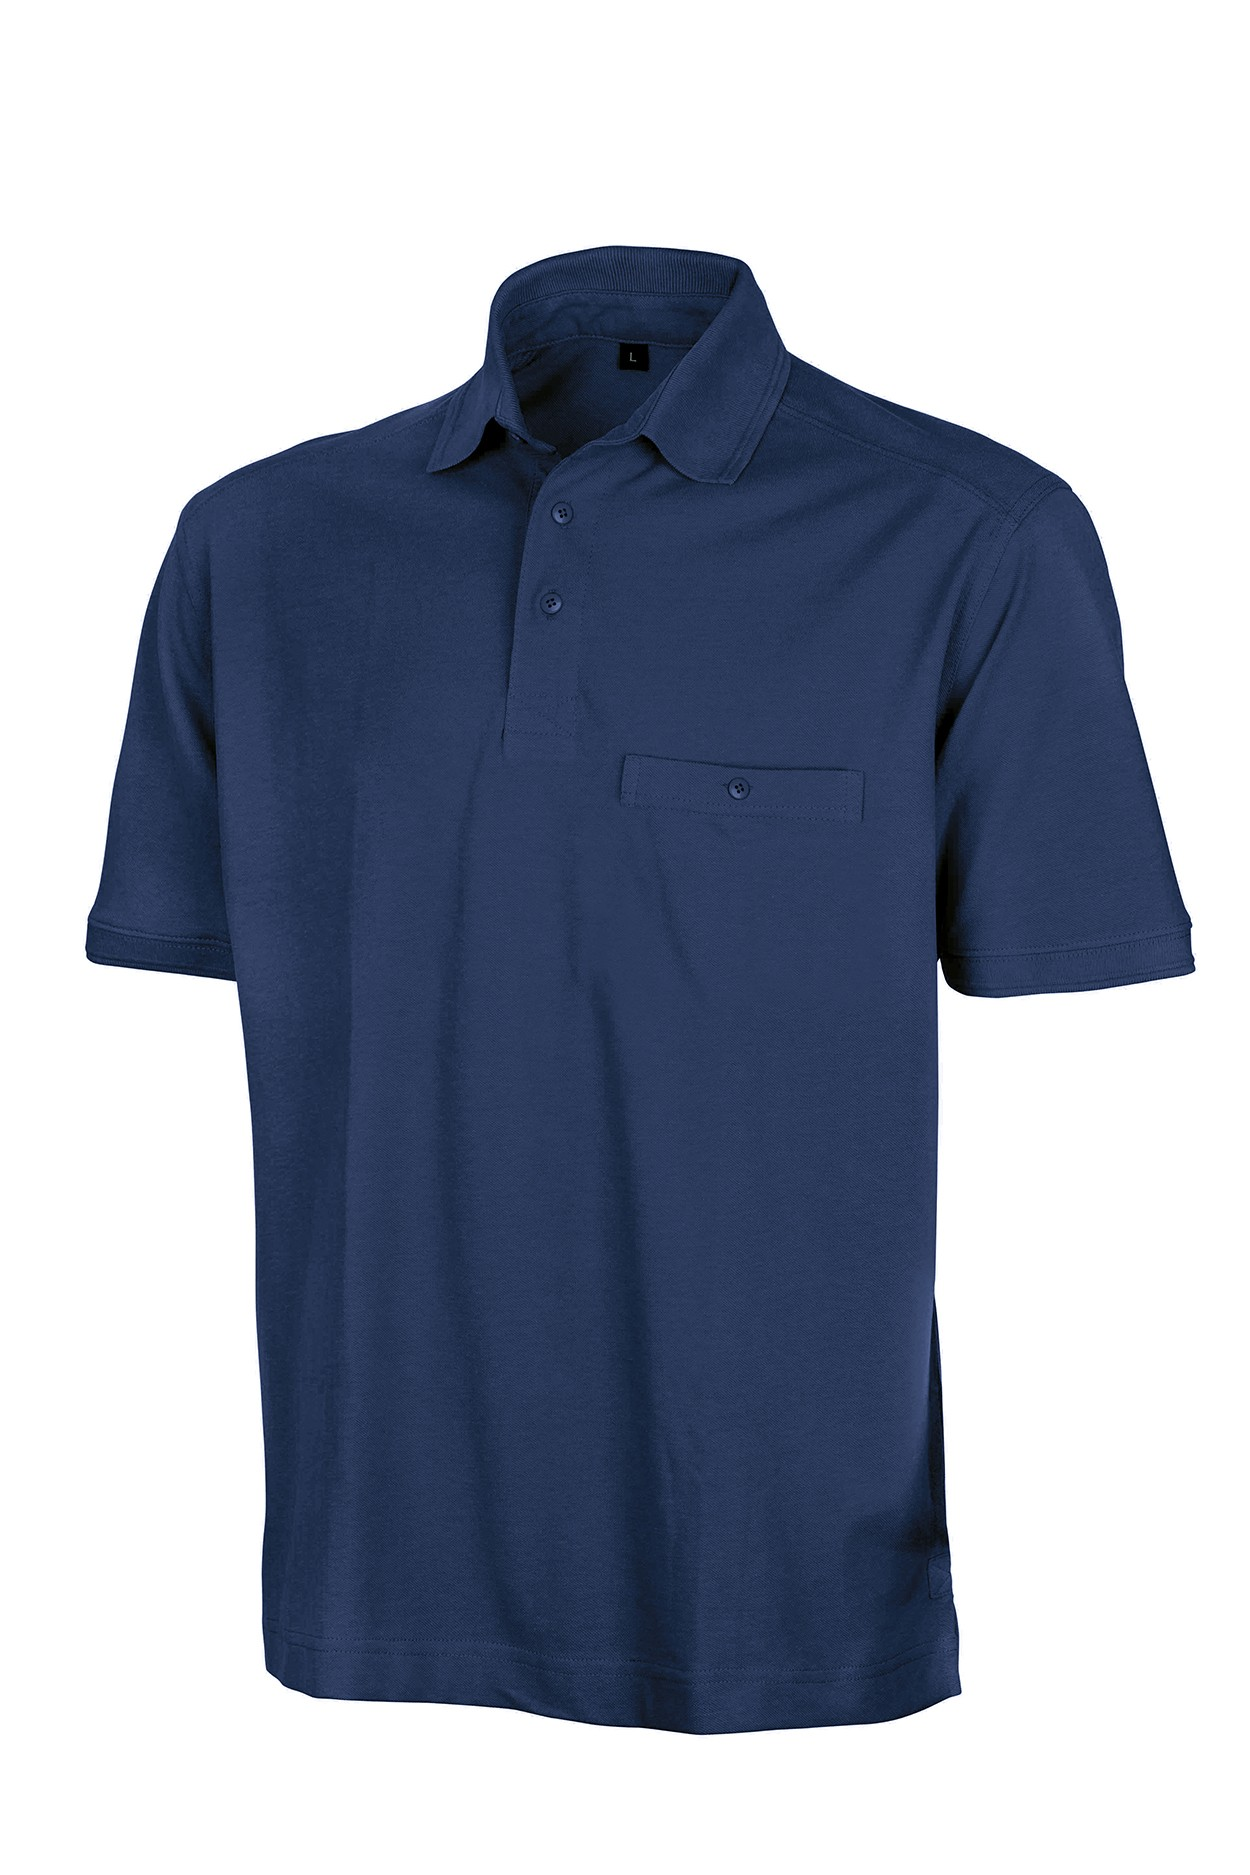 Result R312x Work Guard Apex Polo Shirt Workwear Polo Shirts